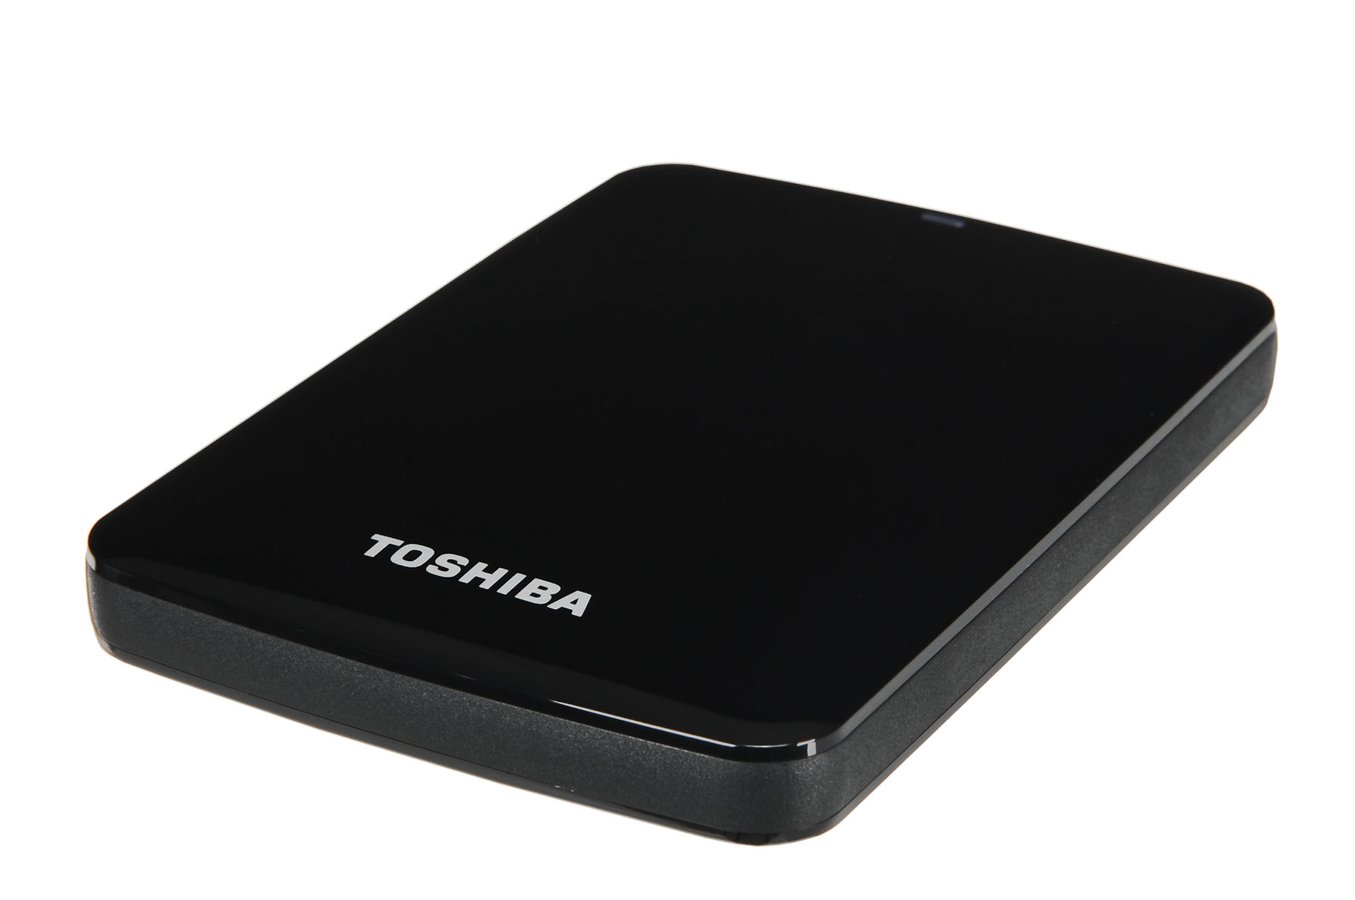 disque dur externe toshiba stor e canvio 2 5 1to usb 3 0. Black Bedroom Furniture Sets. Home Design Ideas